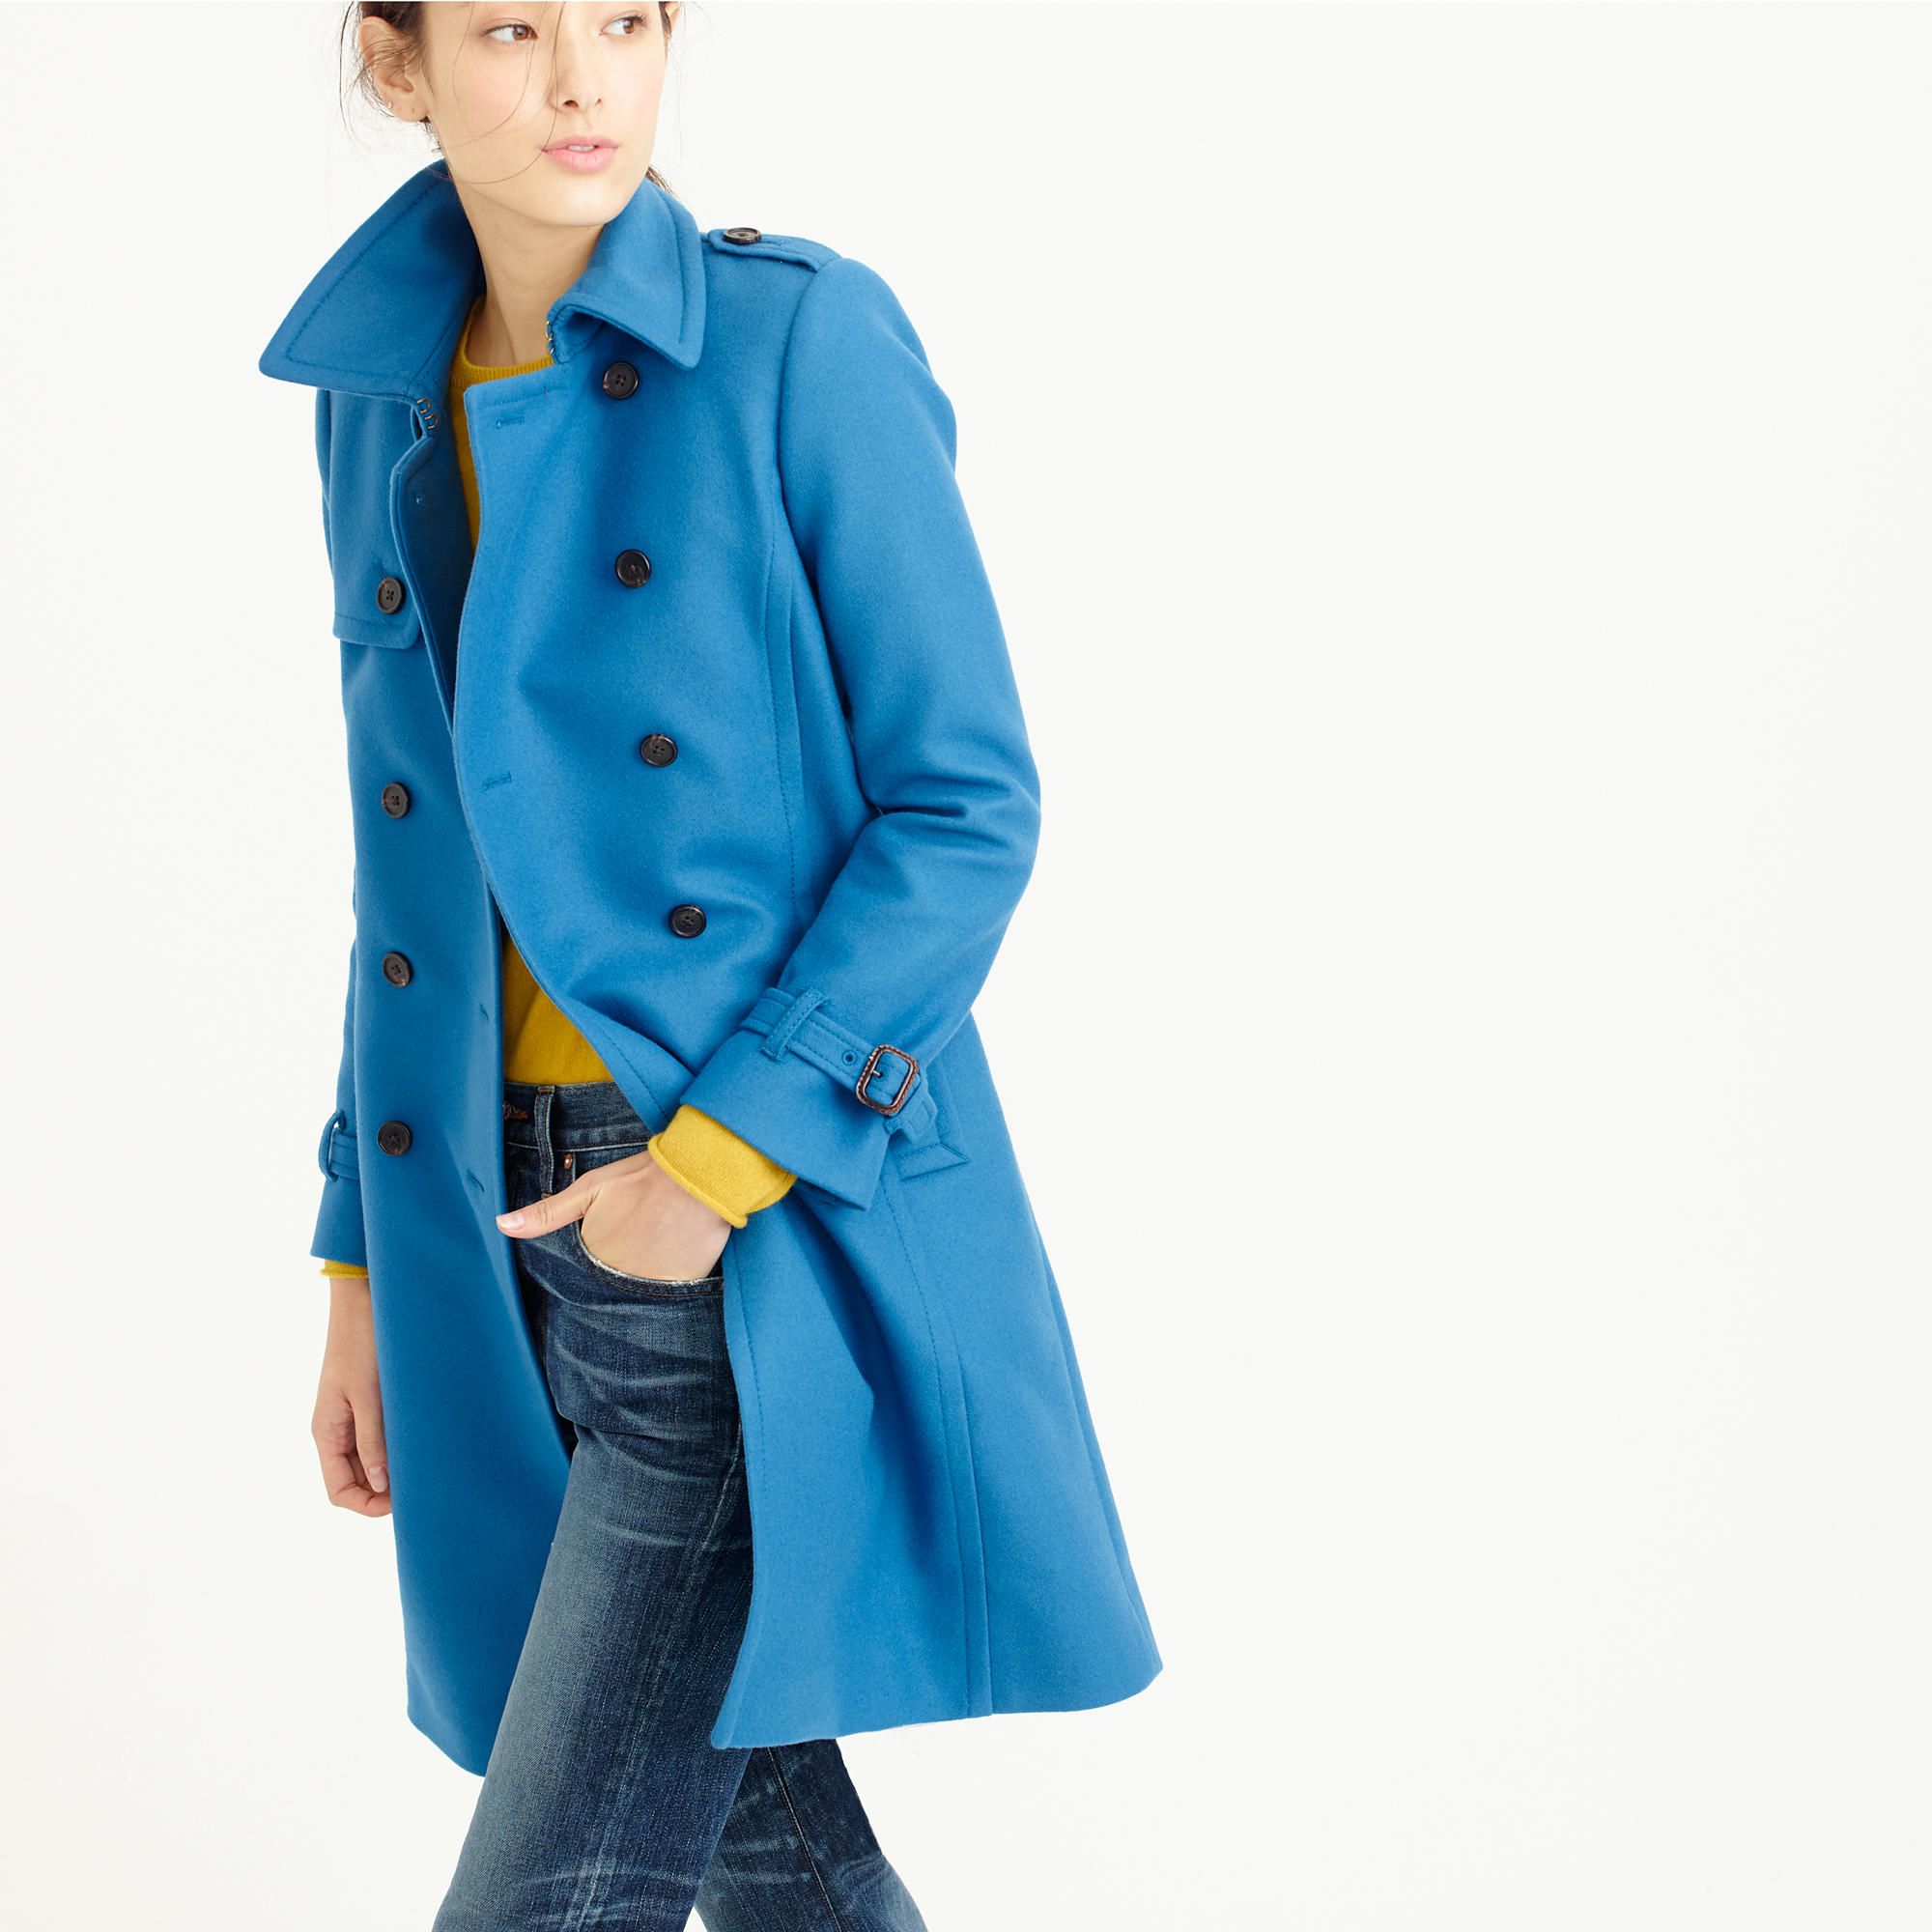 J.Crew Petite Icon Trench Coat In Wool Cashmere in Blue - Lyst acf25525f286